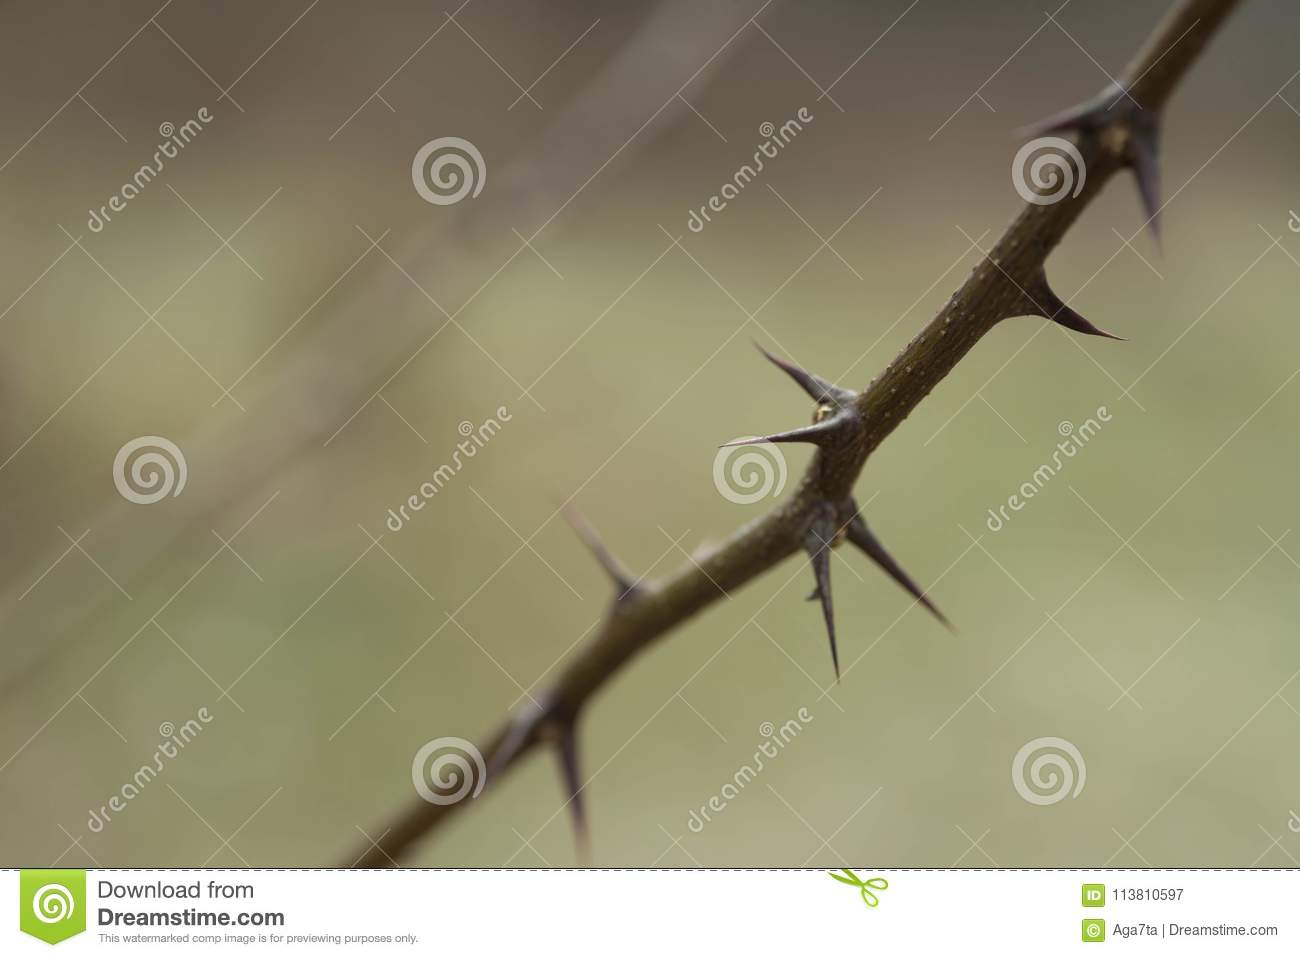 Thorn of black locust macro